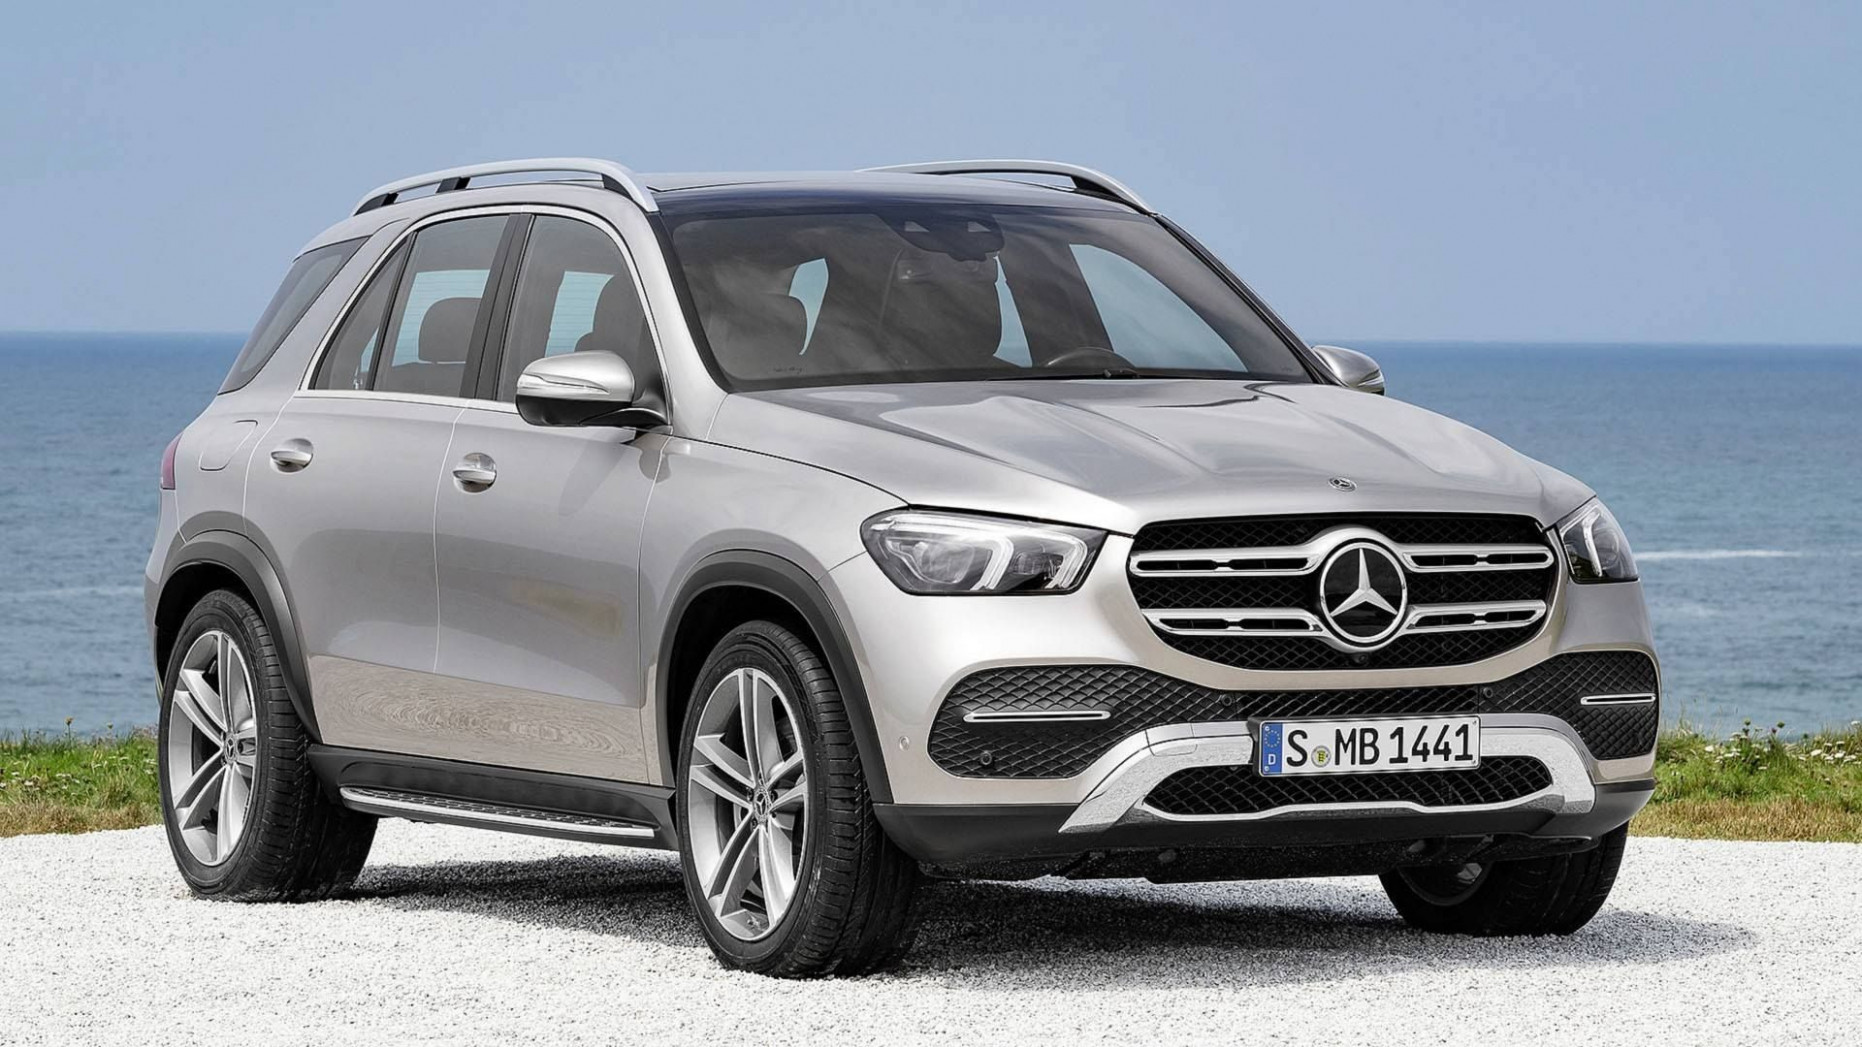 8 Mercedes-Benz Gle Launches With Smoother Look, Tons Of Tech ..